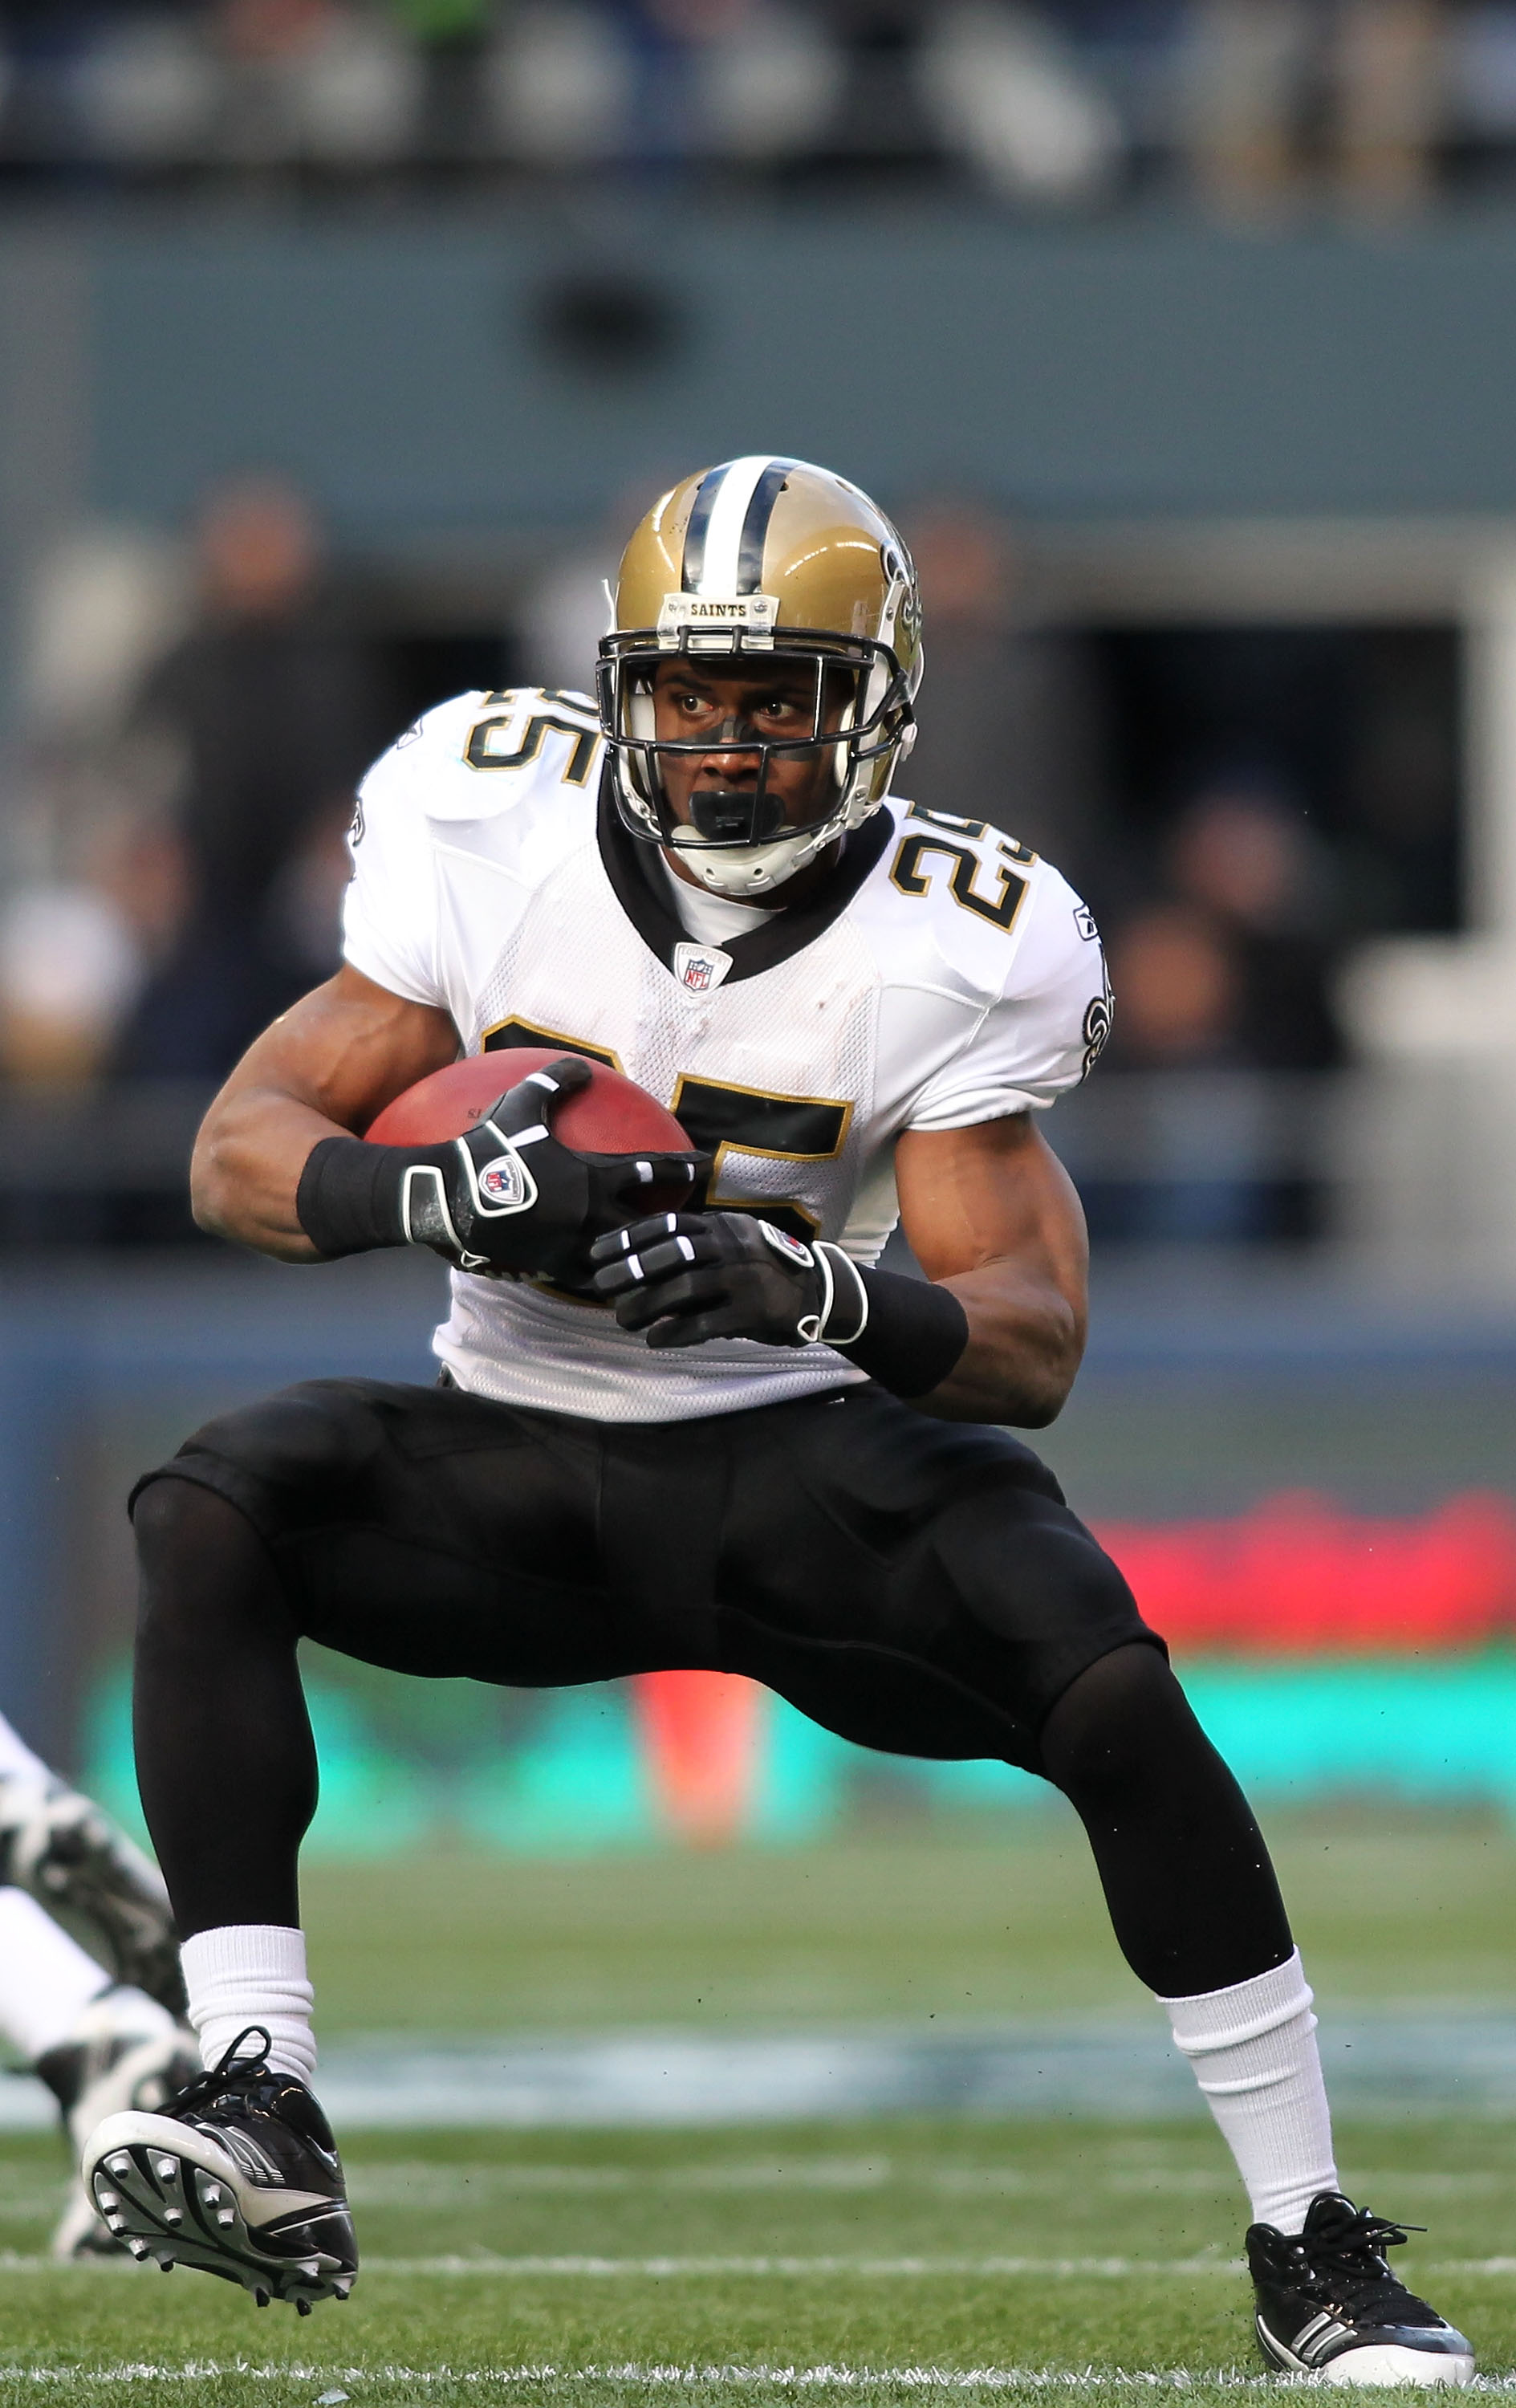 SEATTLE, WA - JANUARY 08:  Reggie Bush #25 of the New Orleans Saints runs down field against the Seattle Seahawks during the 2011 NFC wild-card playoff game at Qwest Field on January 8, 2011 in Seattle, Washington.  (Photo by Jonathan Ferrey/Getty Images)